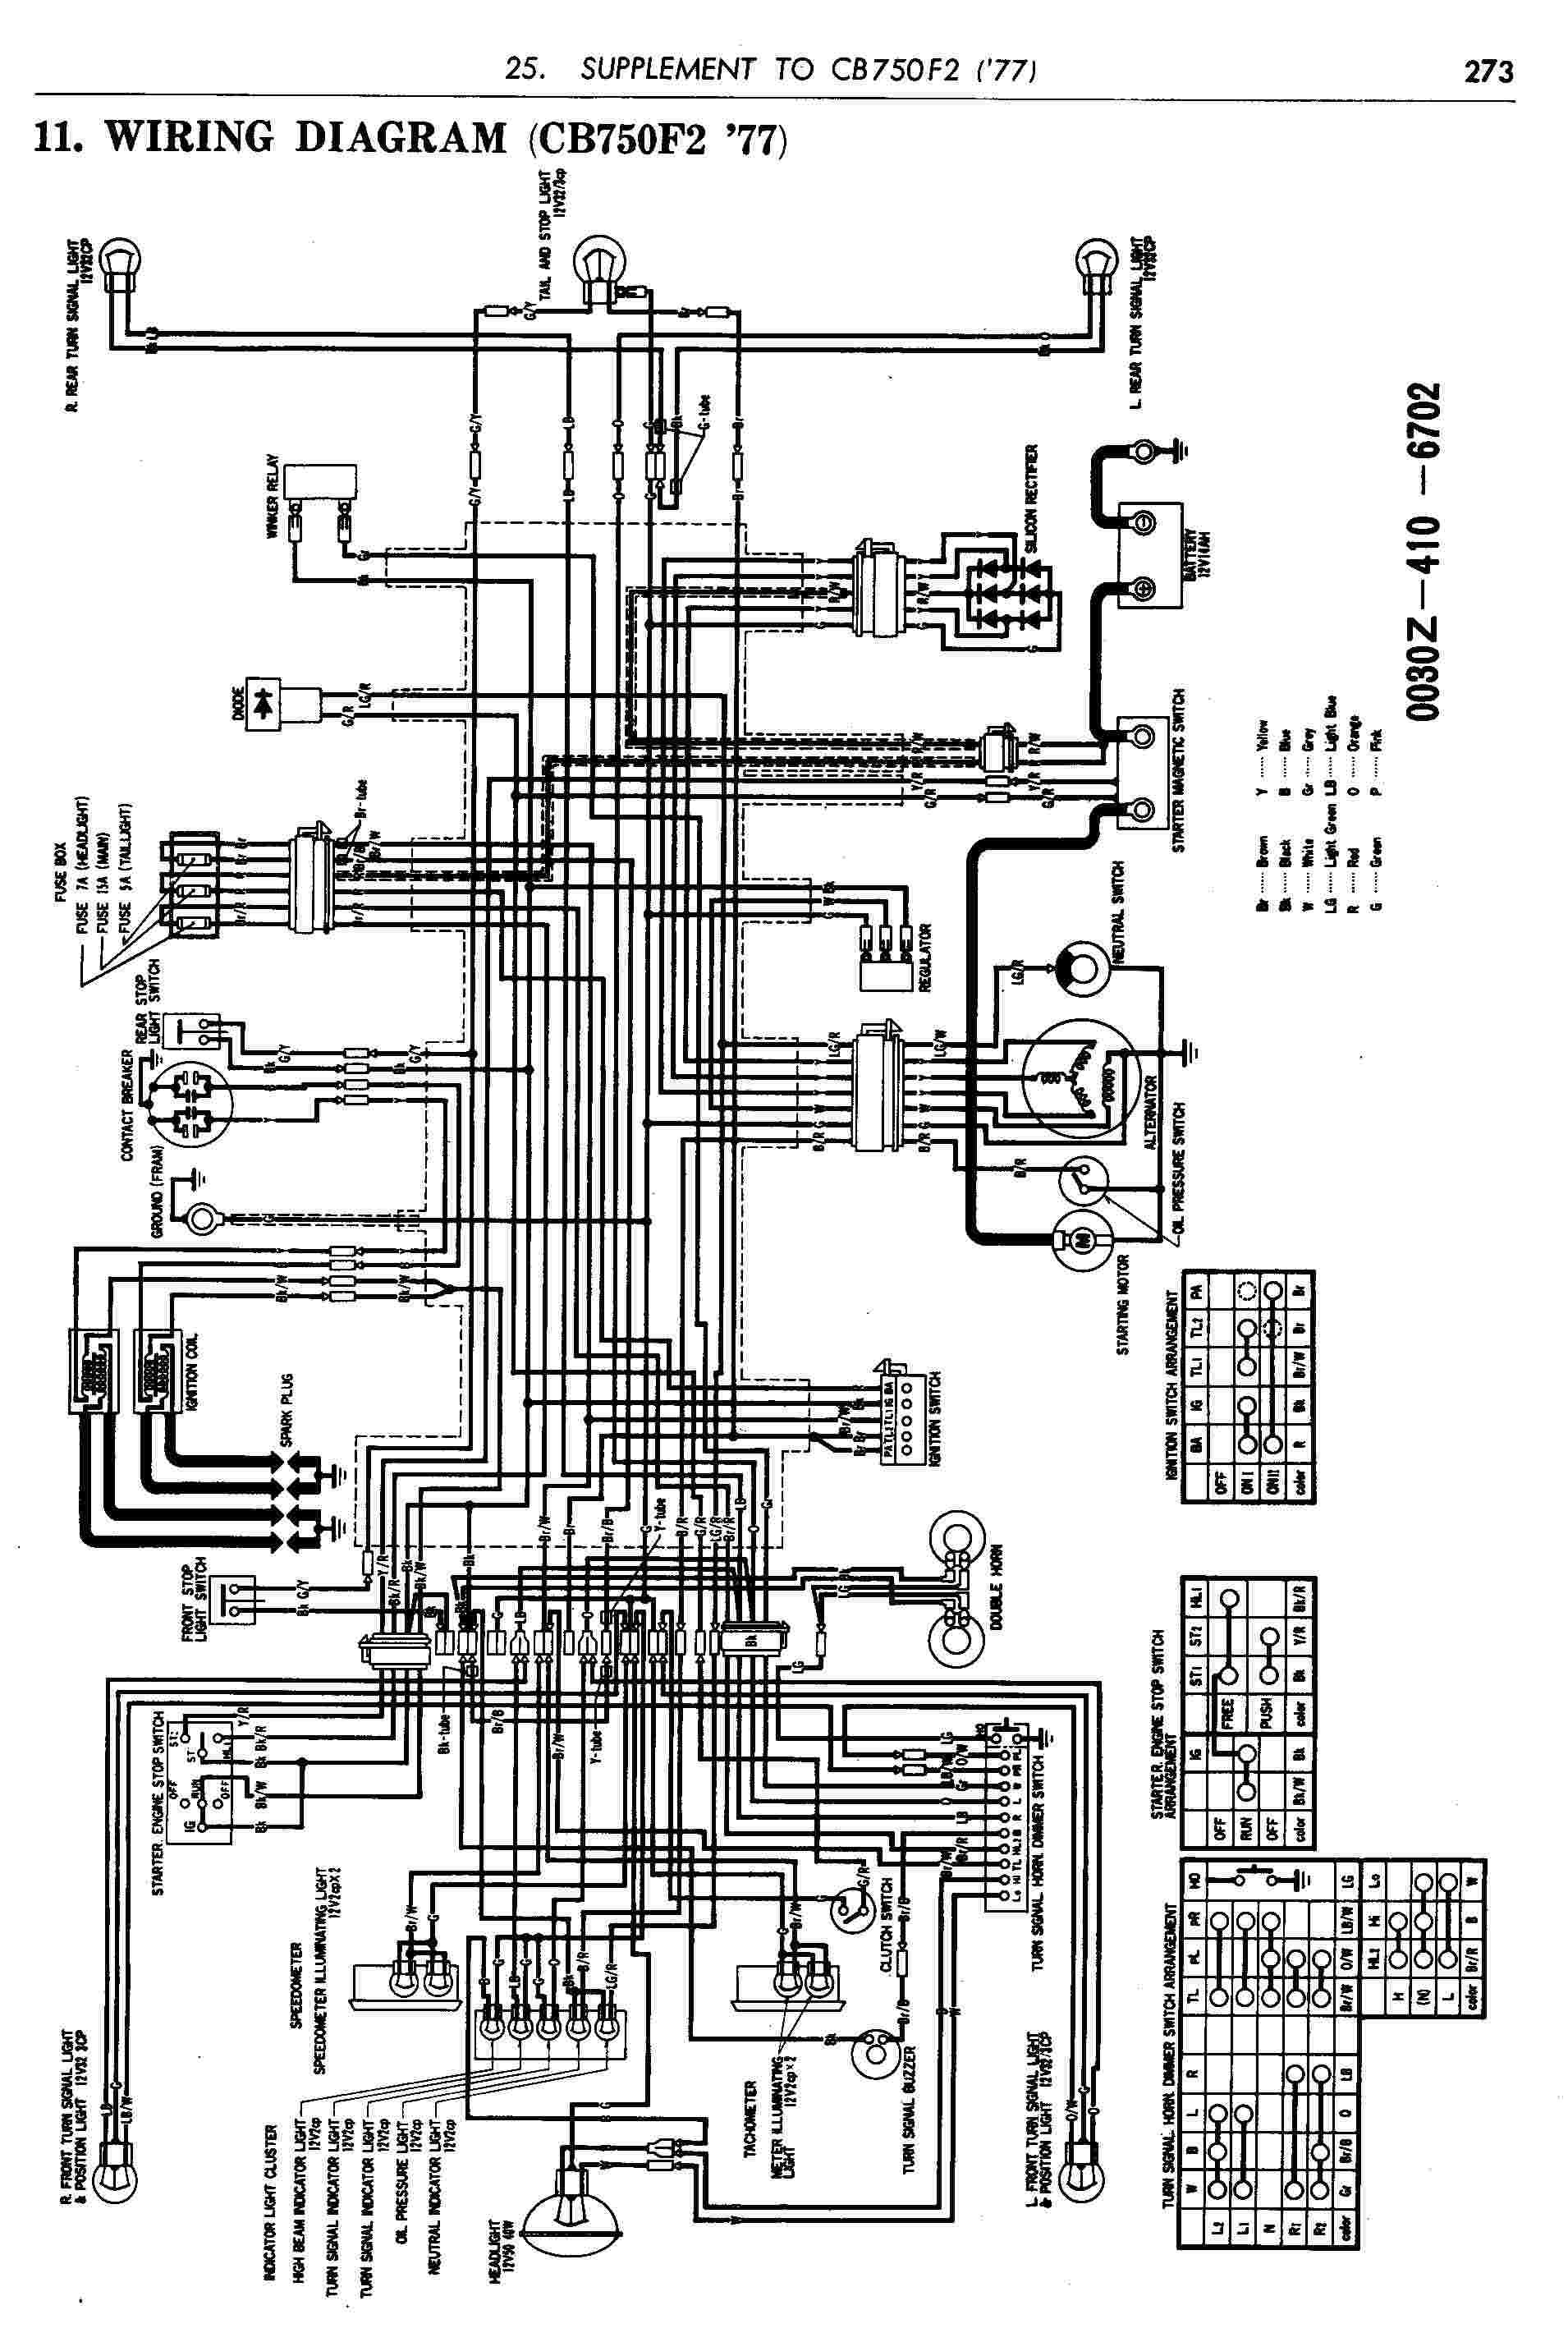 Honda Cb750 Engine Diagram Simple Motorcycle Wiring For Chopper Cb750k2 Of